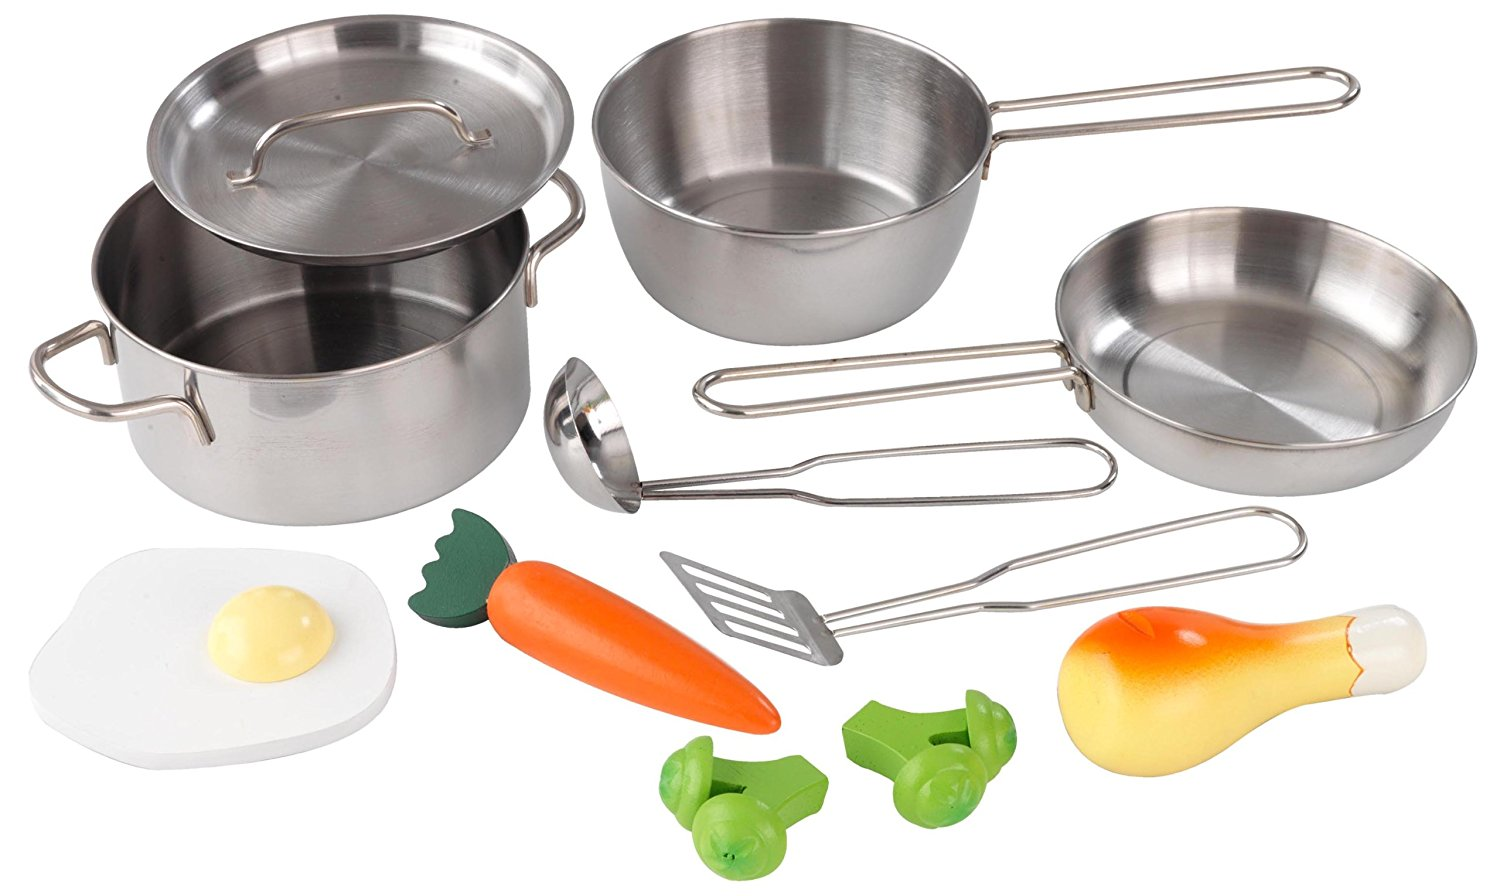 , Deluxe Cookware Set, (11 pieces)..., By KidKraft Ship from US by